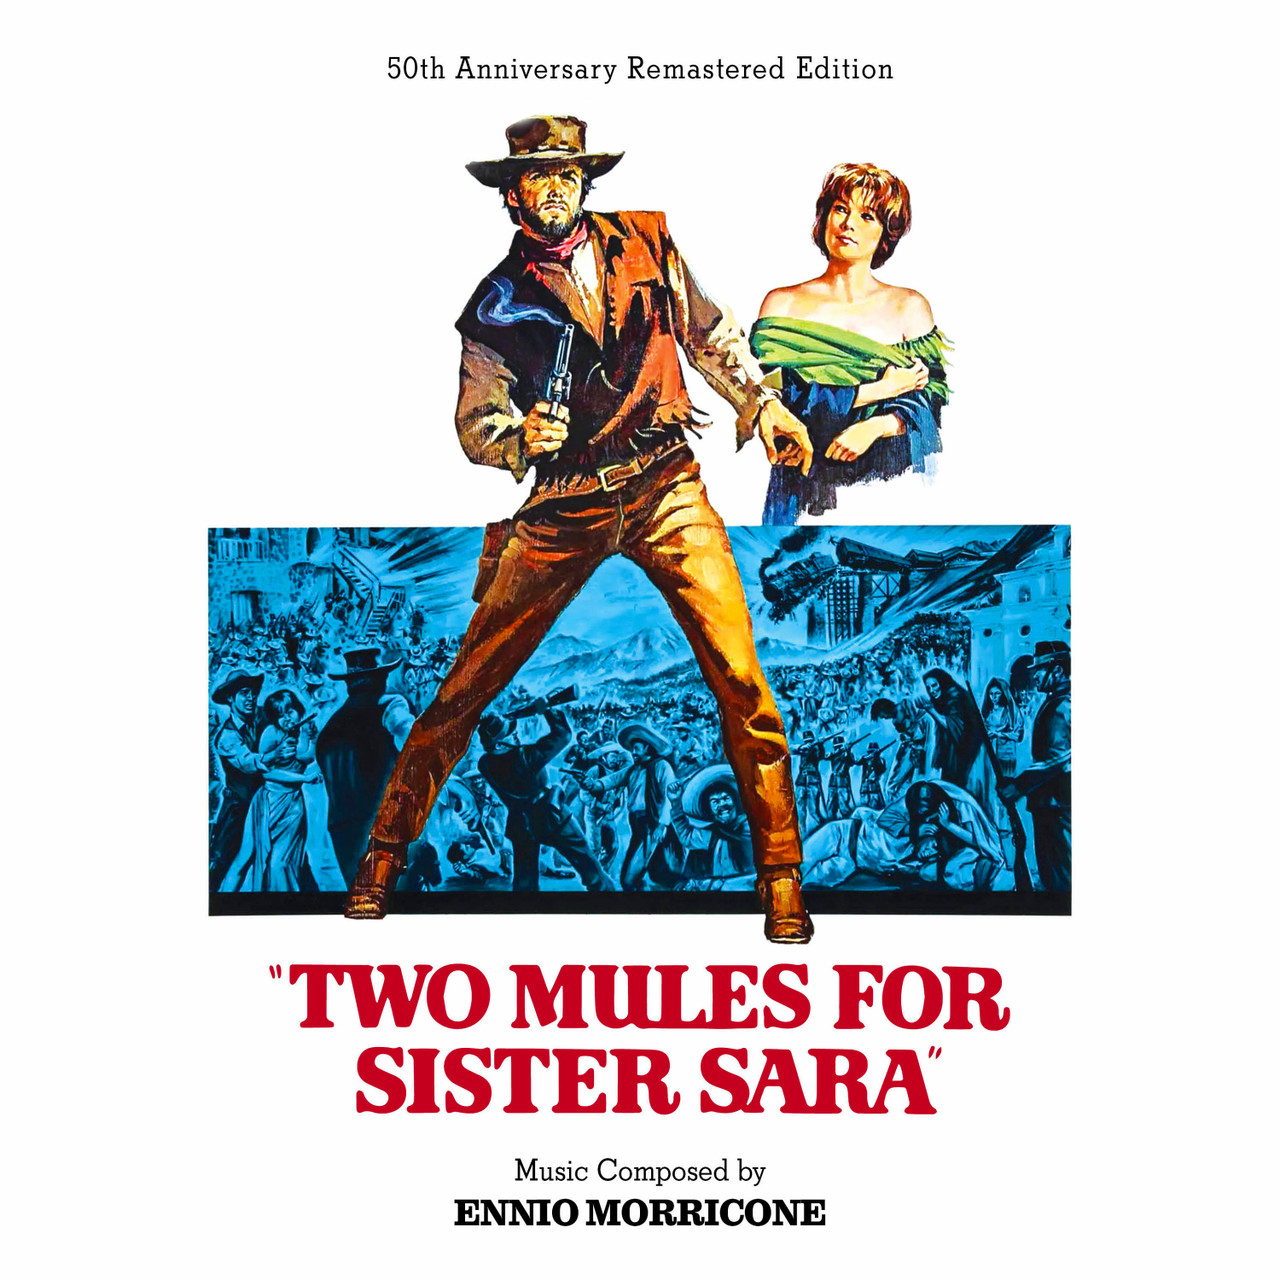 TWO MULES FOR SISTER SARA: LIMITED EDITION